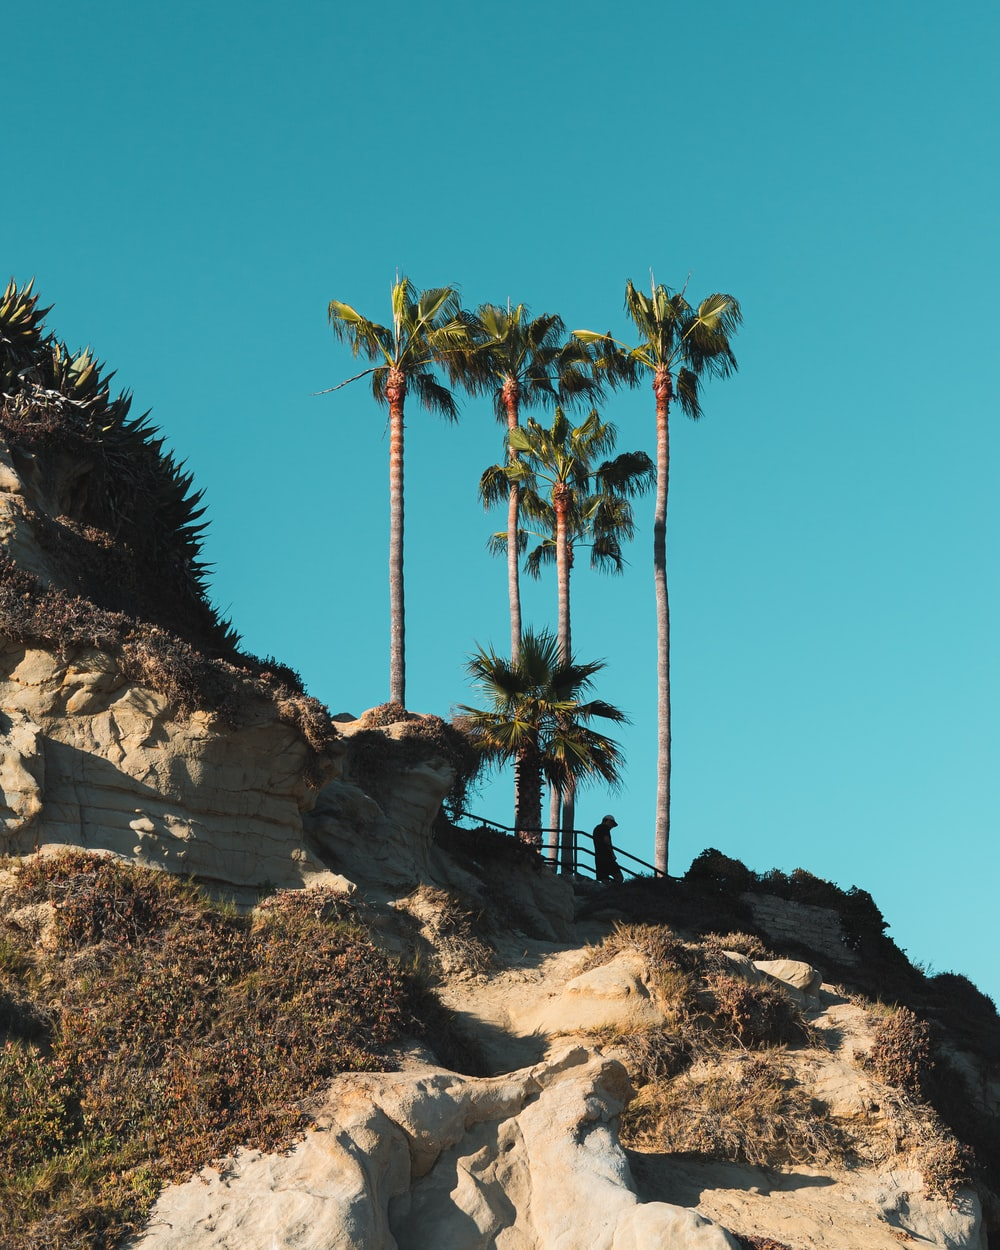 palm tree on brown rocky hill under blue sky during daytime